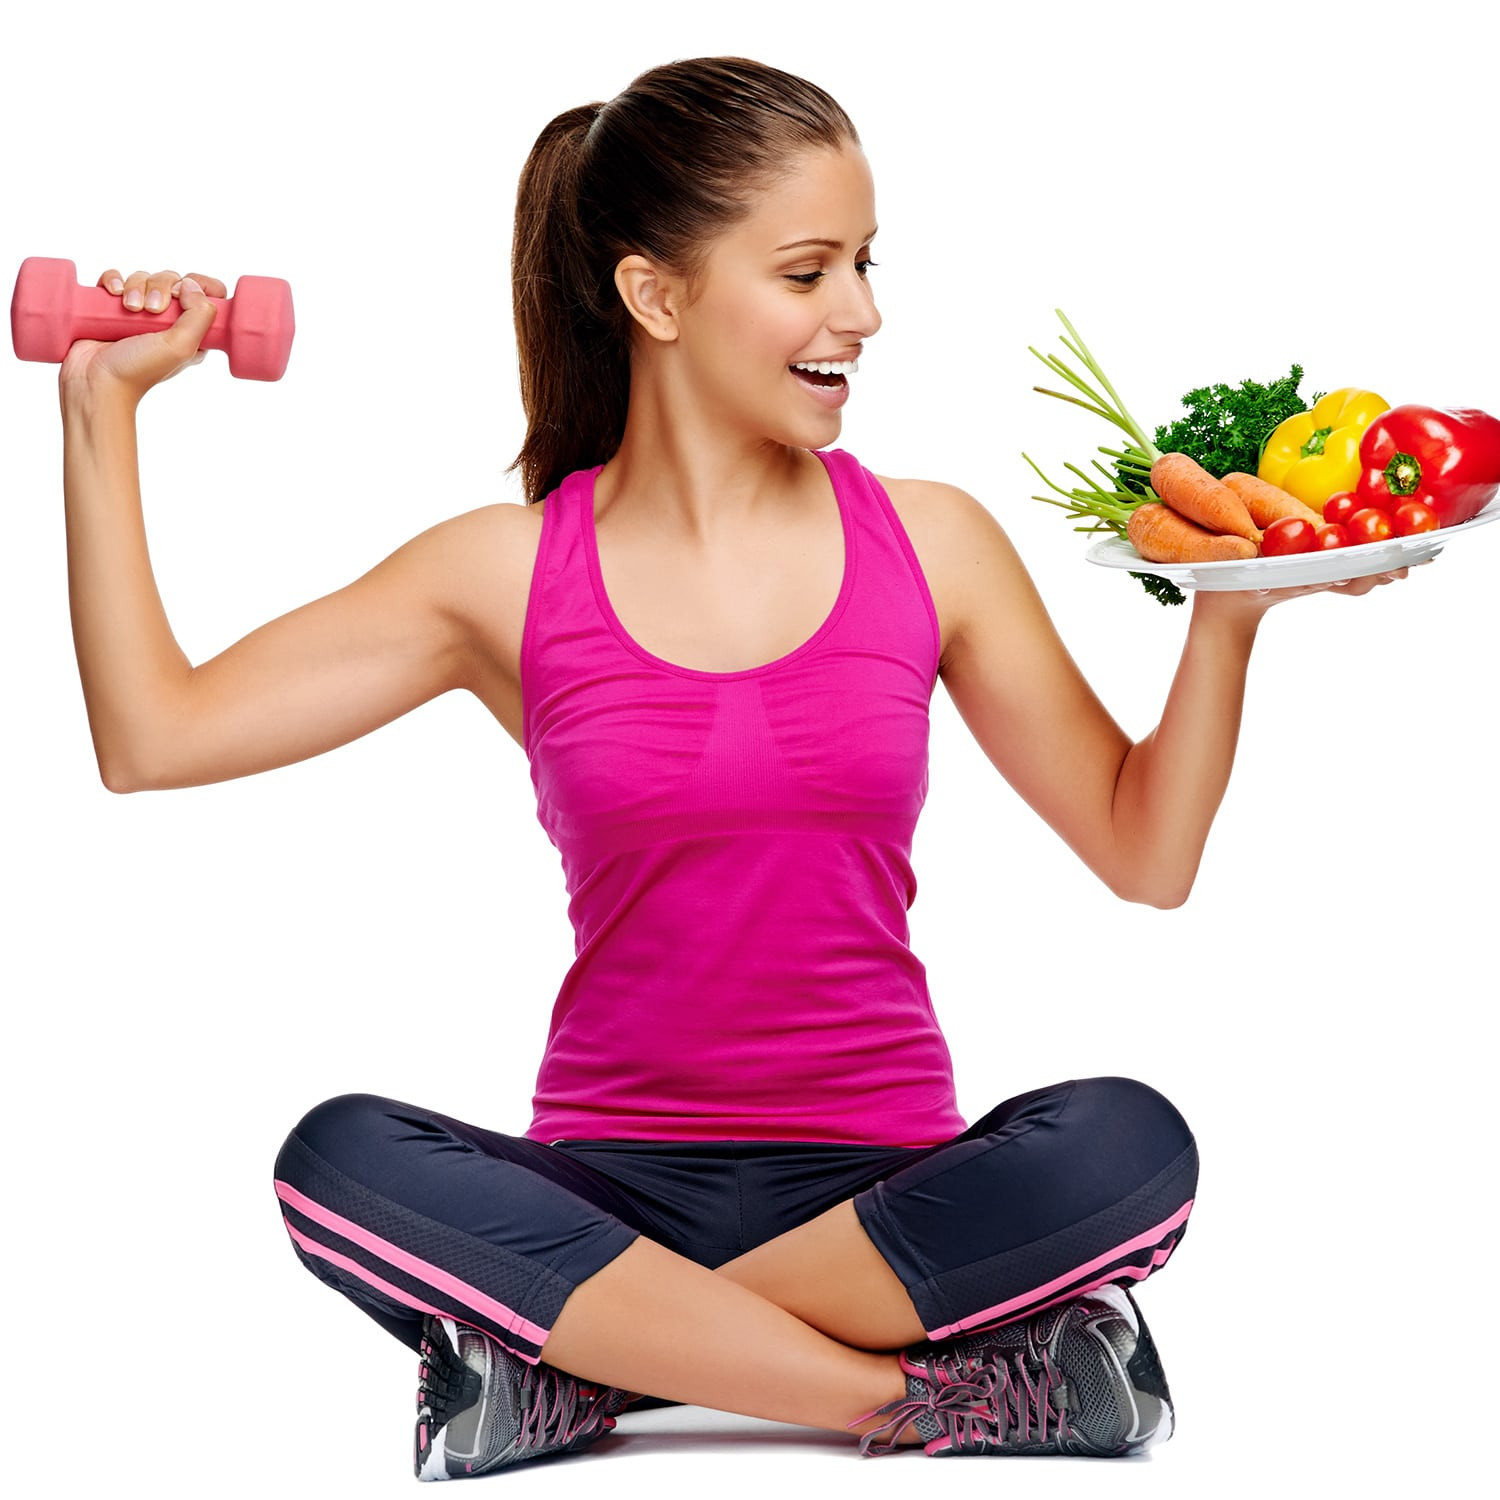 Diet & Exercise Tips for a Healthy Body